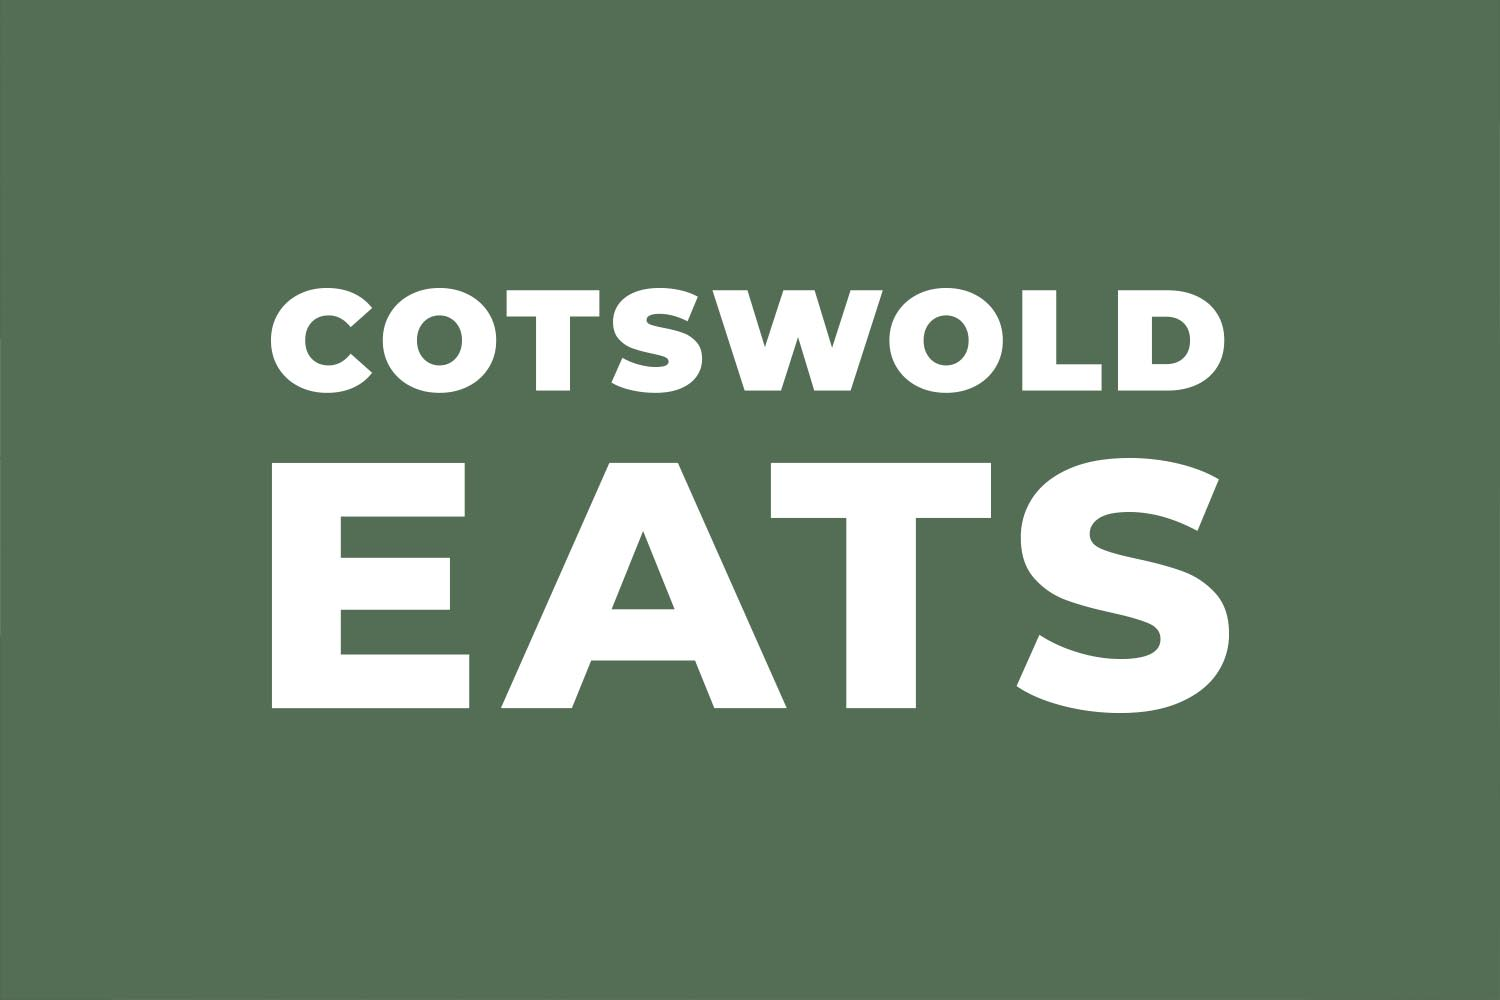 Cotswold Eats Logo Design by Lunalight Limited